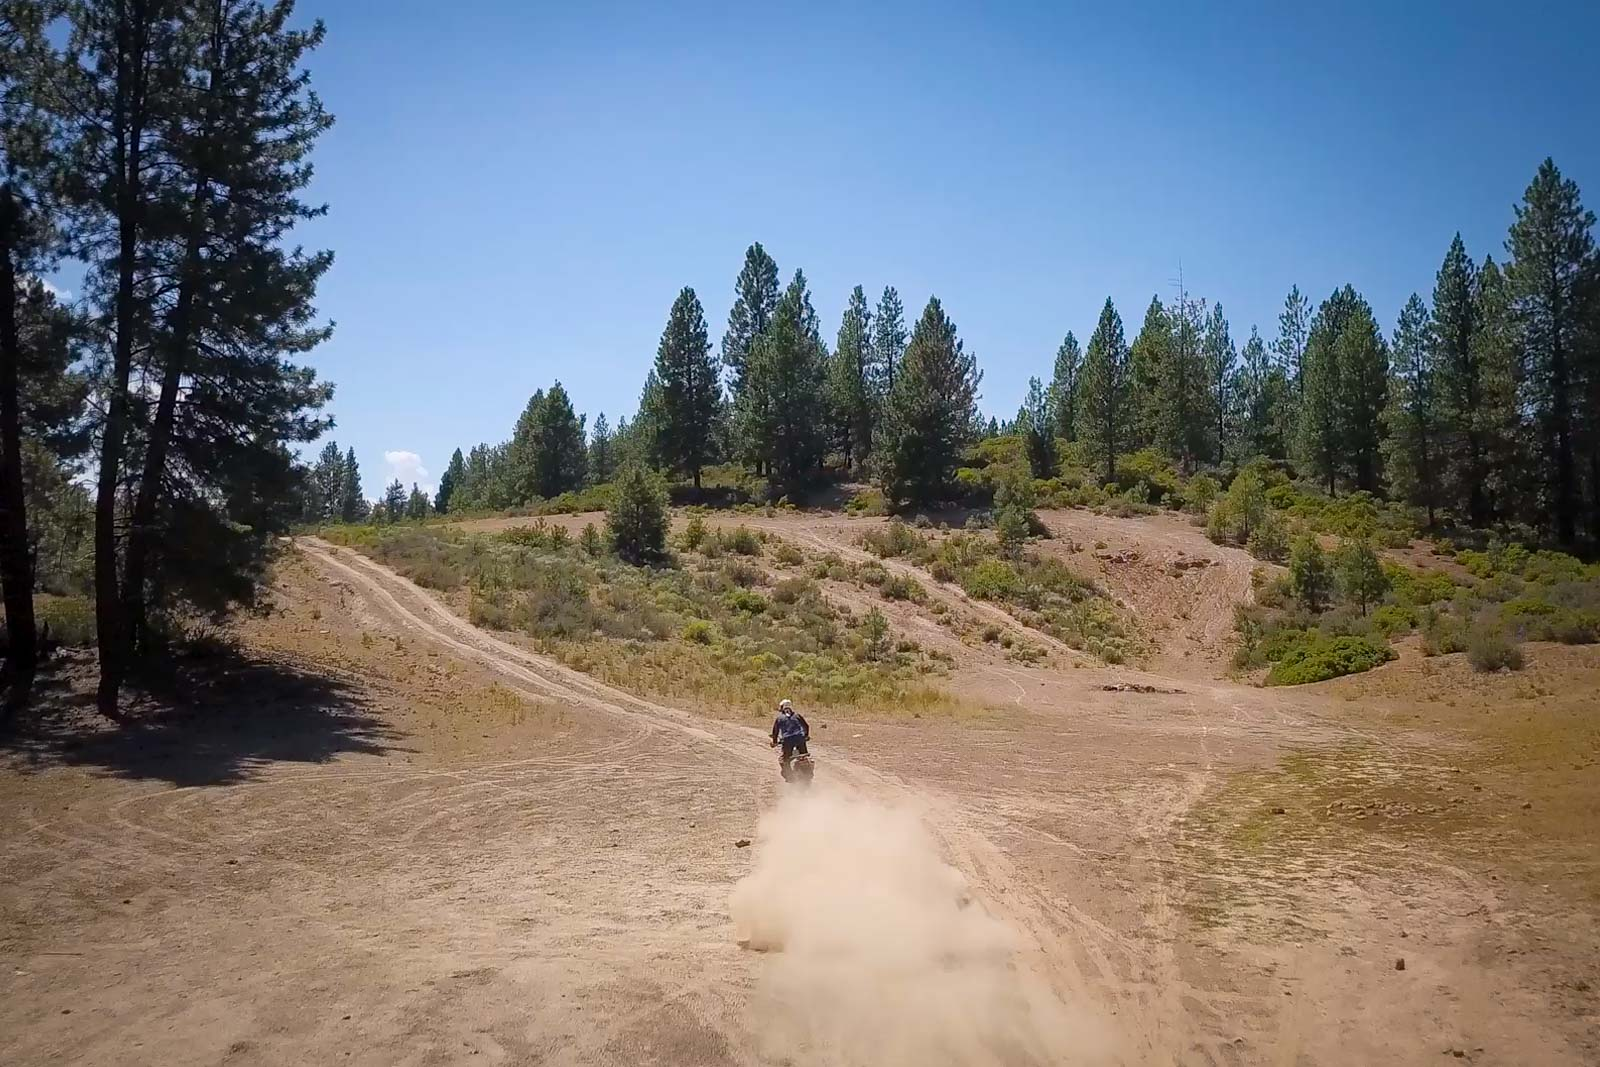 Eric rippin' the trails on the KTM 790 Adventure S in Oregon's backcountry